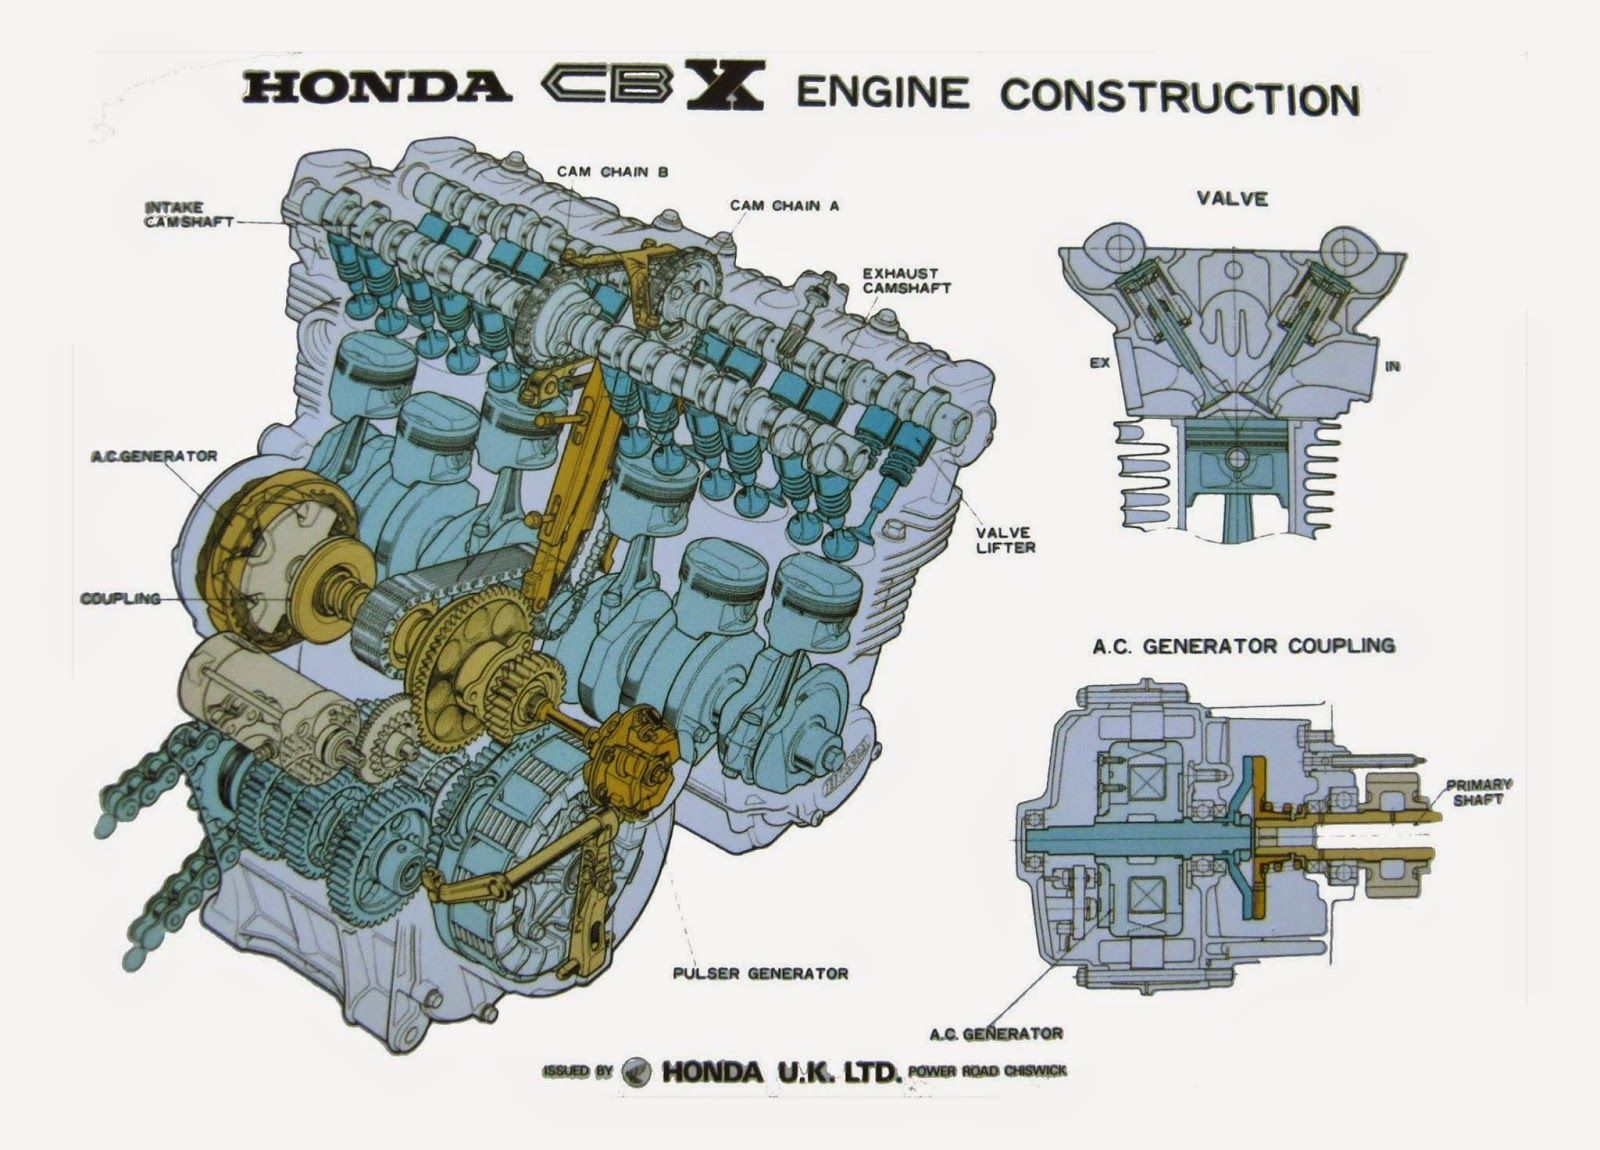 hight resolution of racing caf honda cbx engine diagram motorcycle engine motorcycle art honda cbx